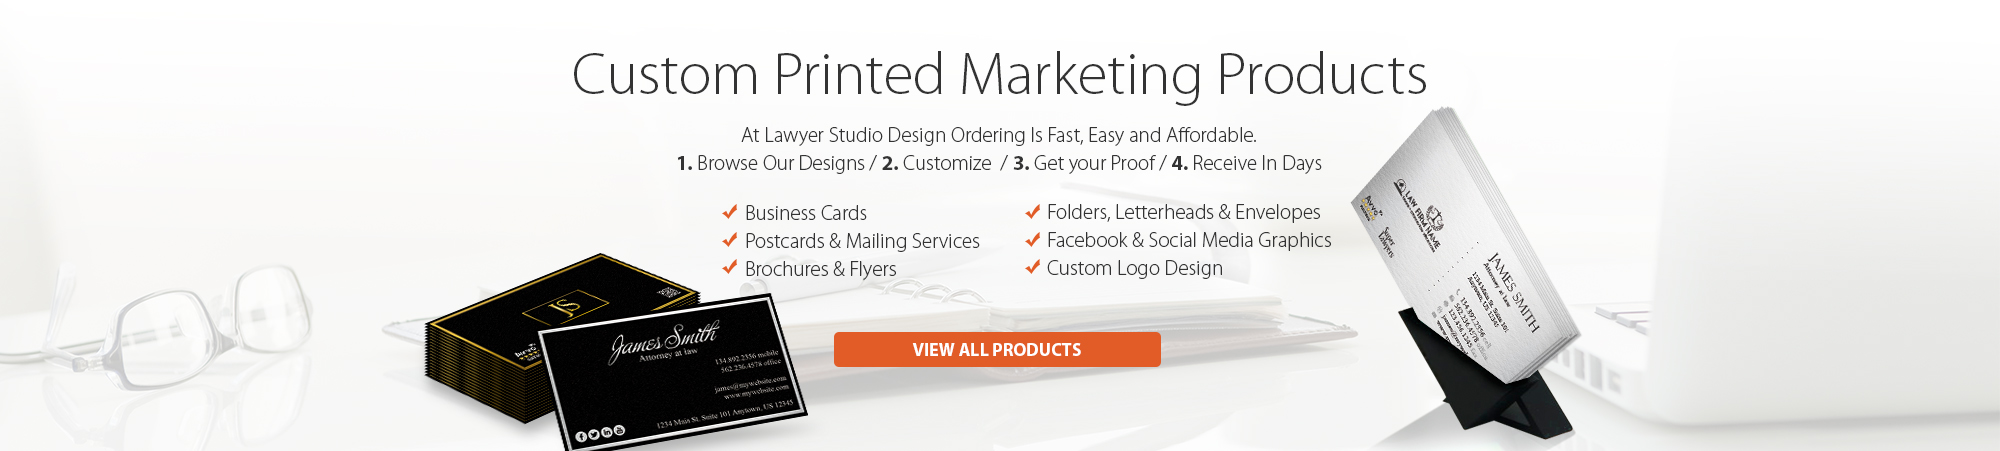 Lawyer Studio Design, Law Firm Marketing Products, Lawyer Marketing Products, Attorney Marketing Products, Law Firm Printing, Lawyer Printing, Attorney Printing